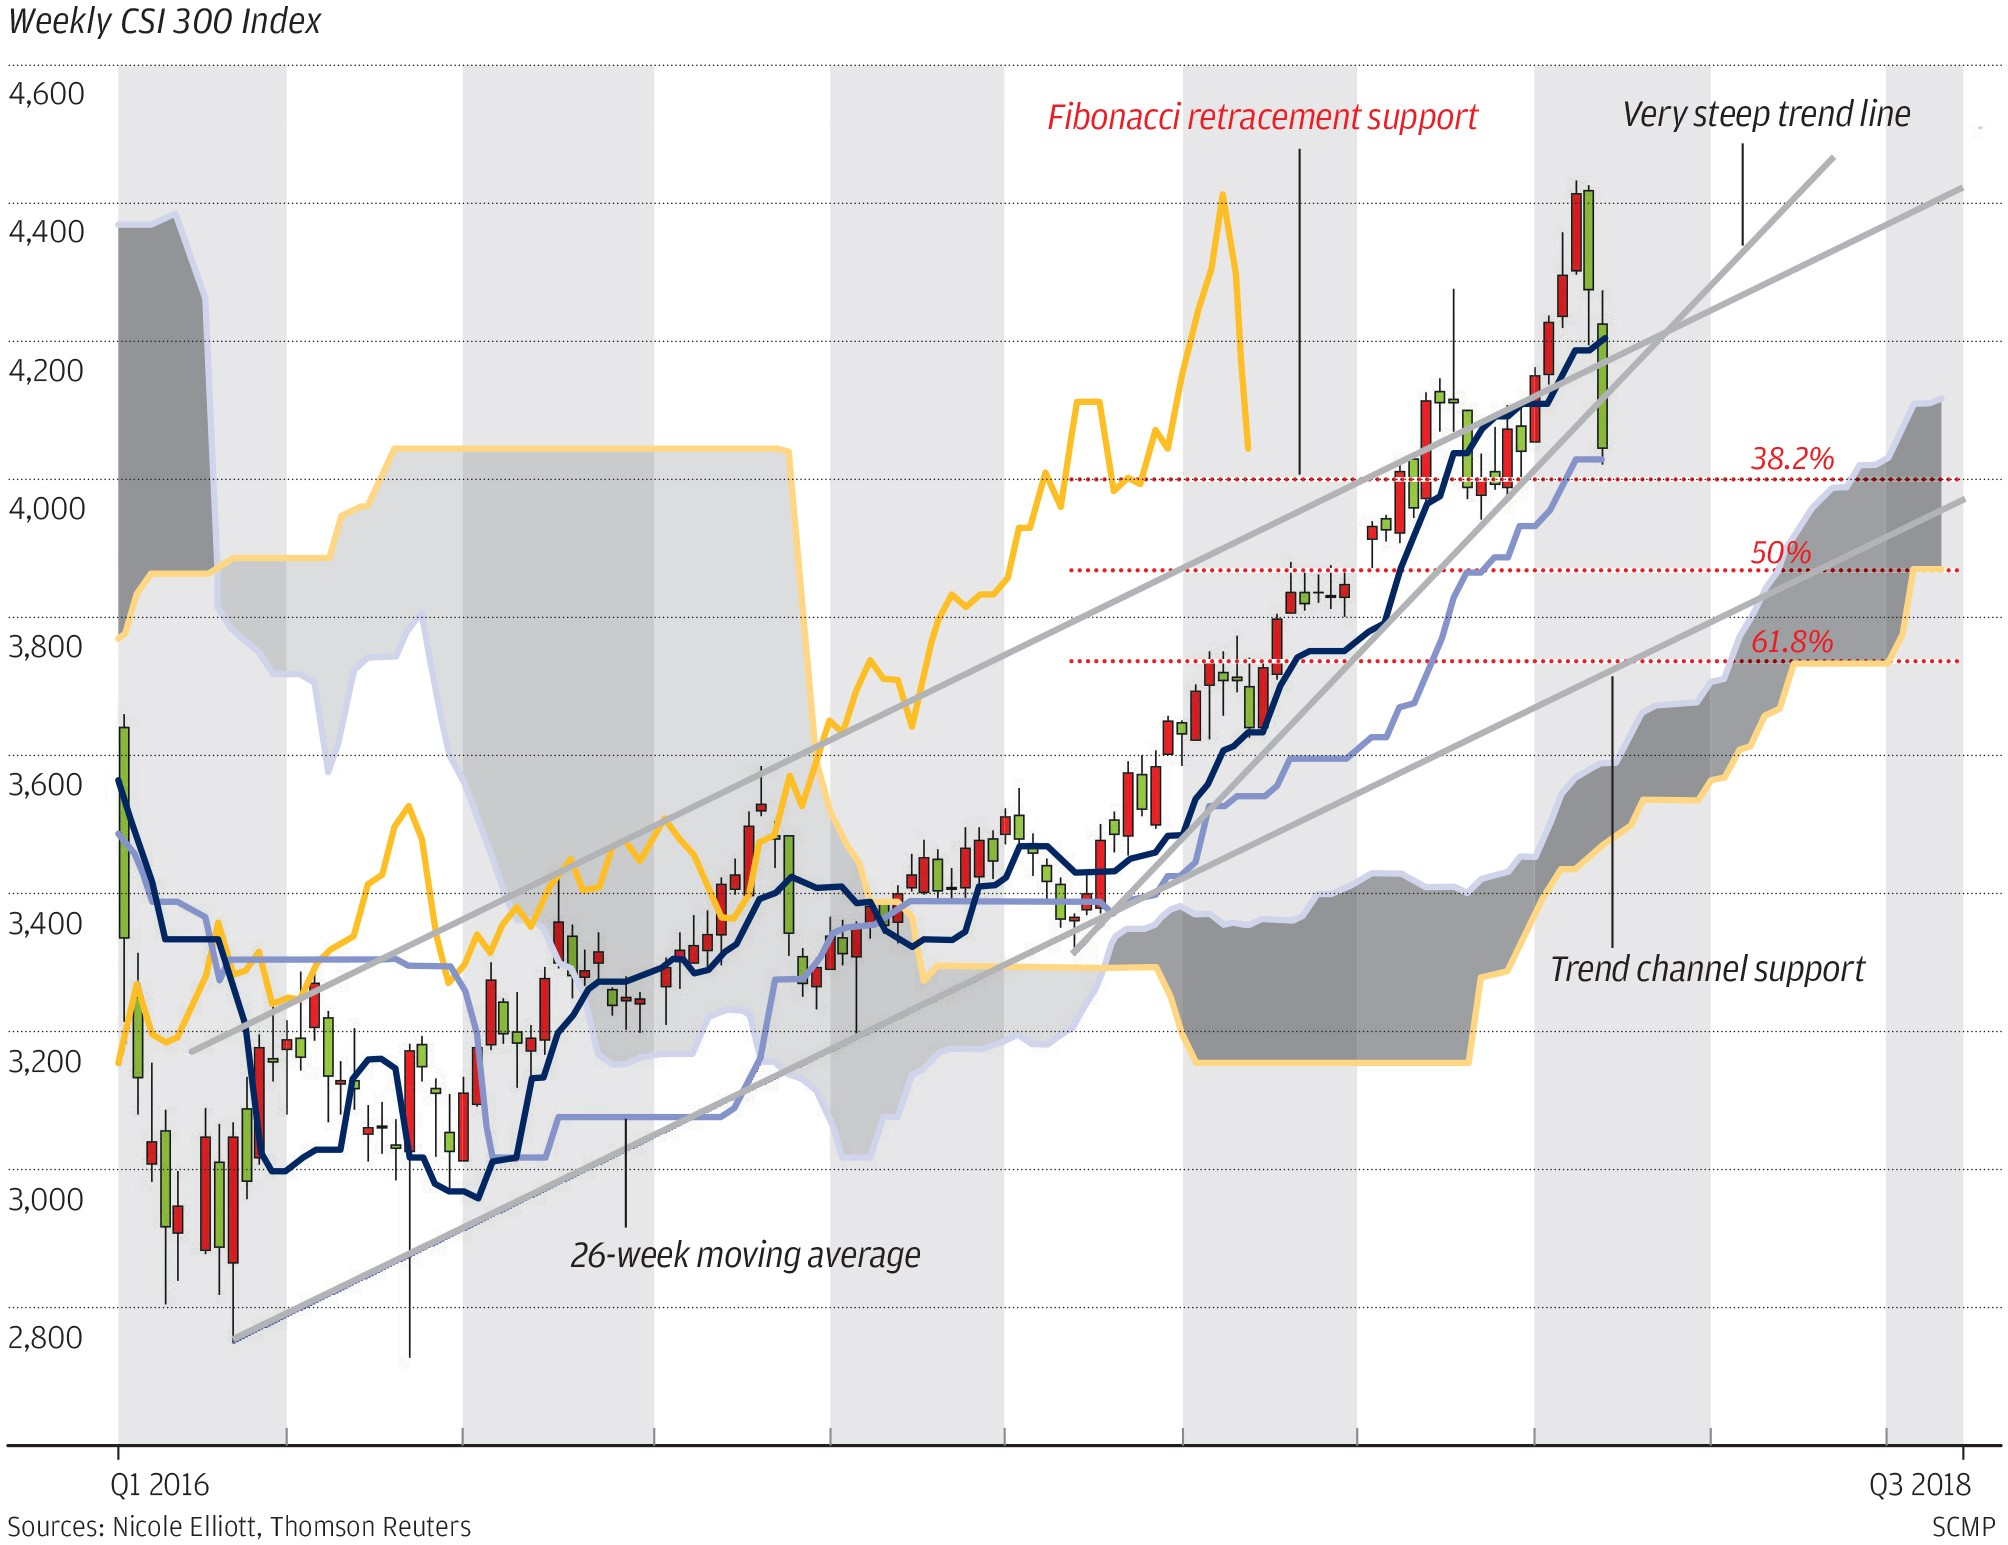 Chart Of The Day Swooning Csi 300 Index South China Computer Mouse Management On A Success Diagram Stock Image Exactly Month Ago We Wrote That Had Strong Bullish Momentum Hoping It Would Rally To Our Second Target At 4400 Points By Lunar